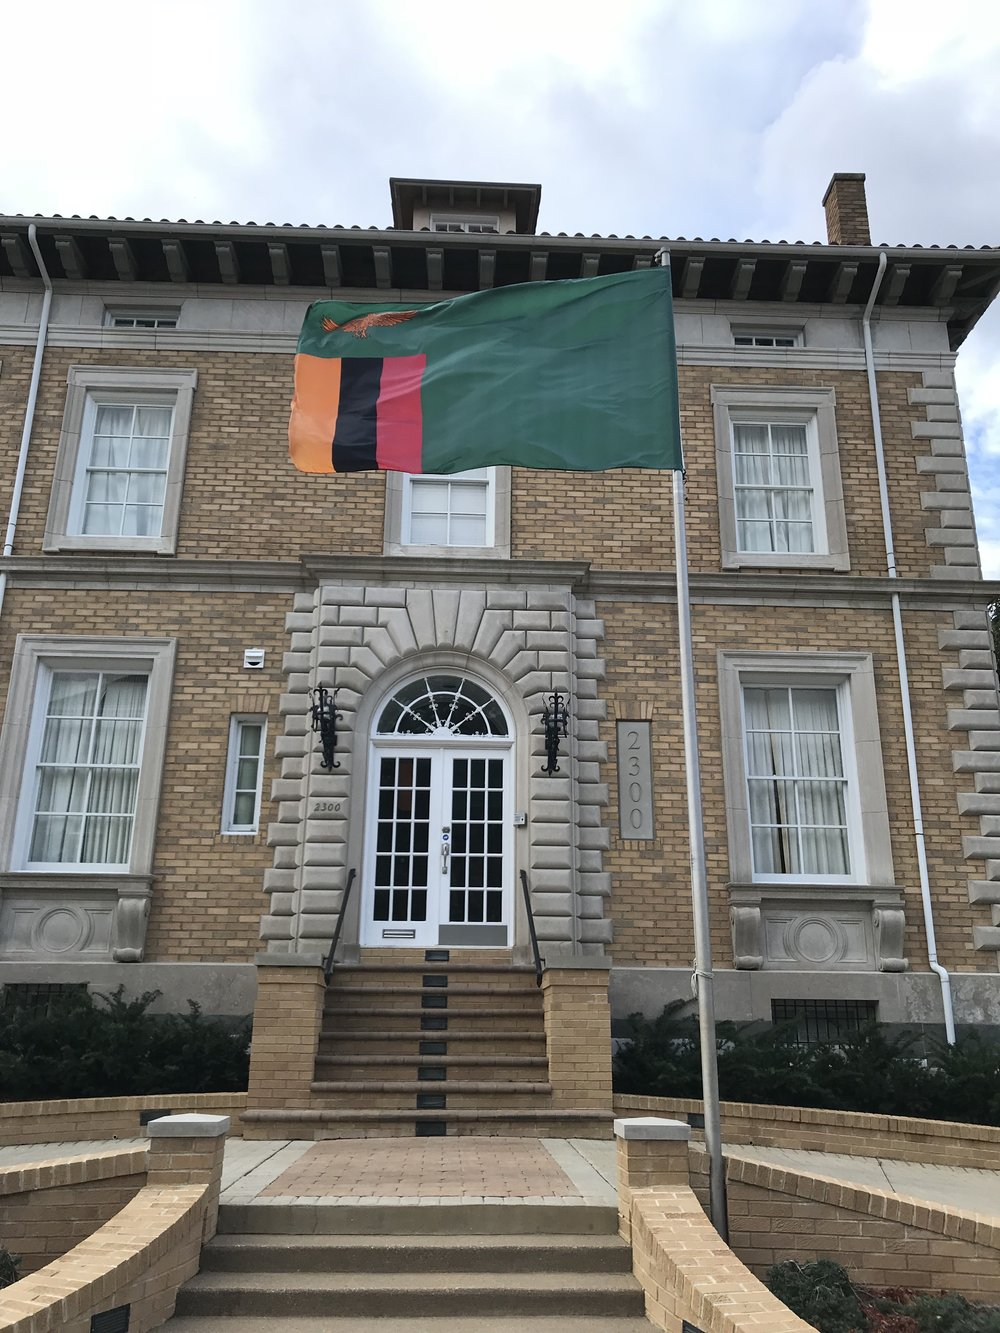 The Residence of the Ambassador of Zambia.